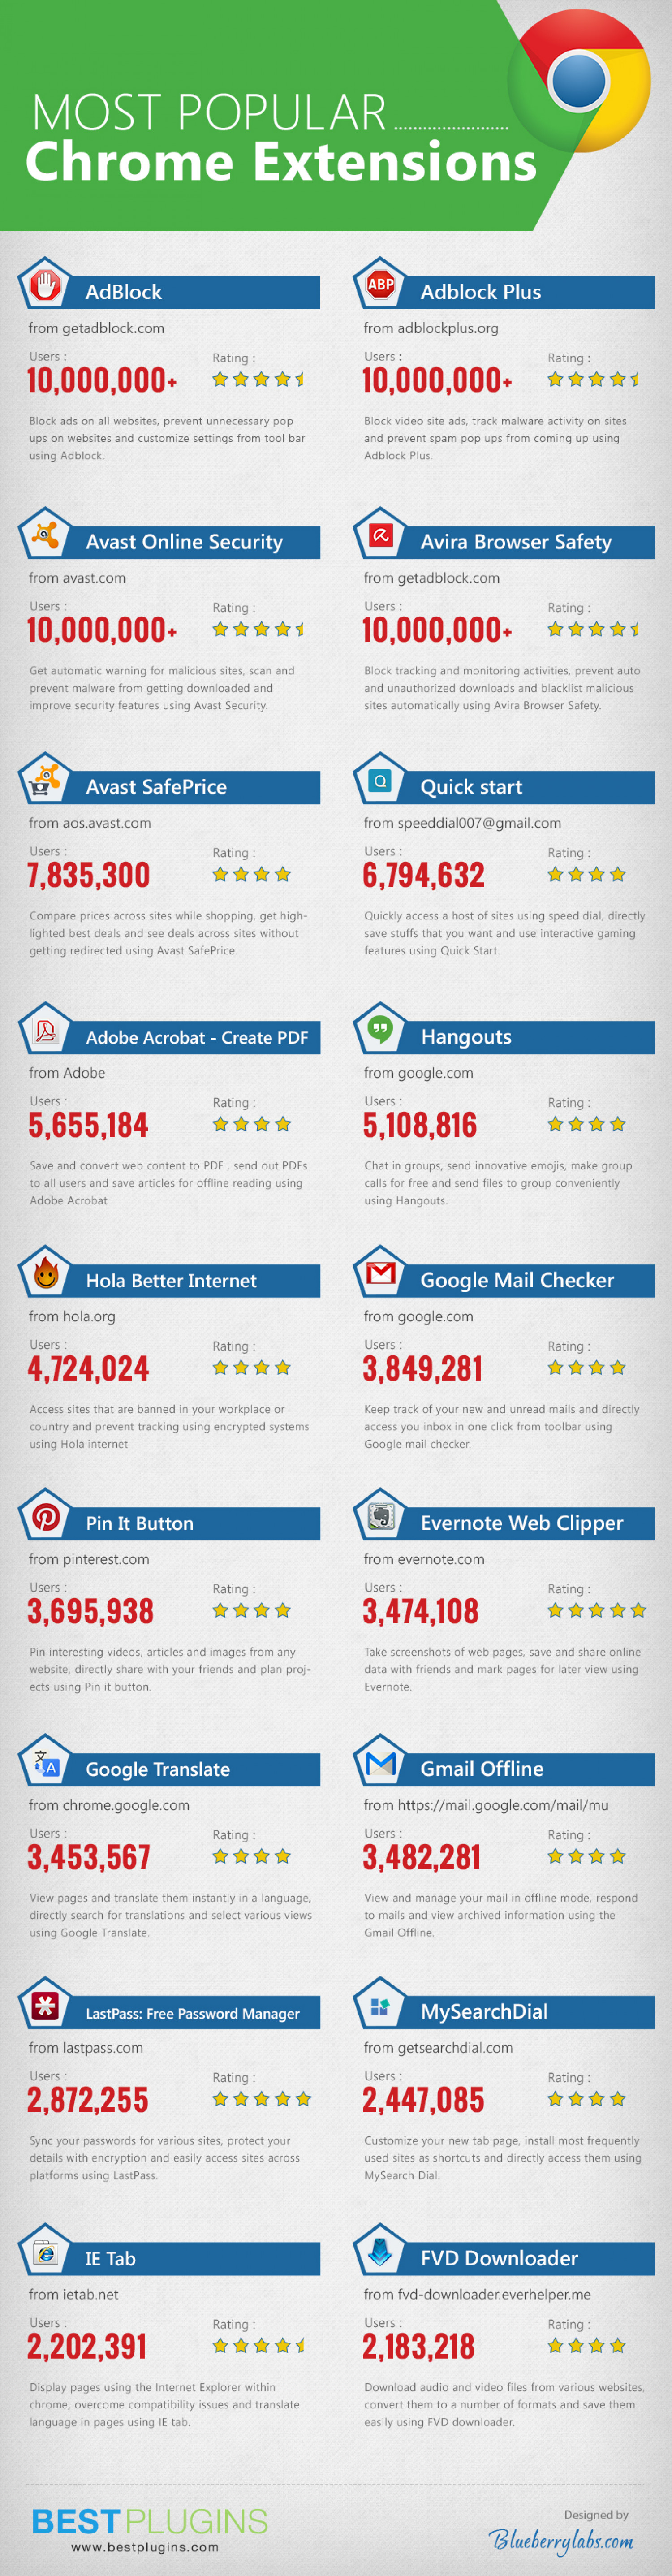 Most Popular Chrome Extensions Infographic